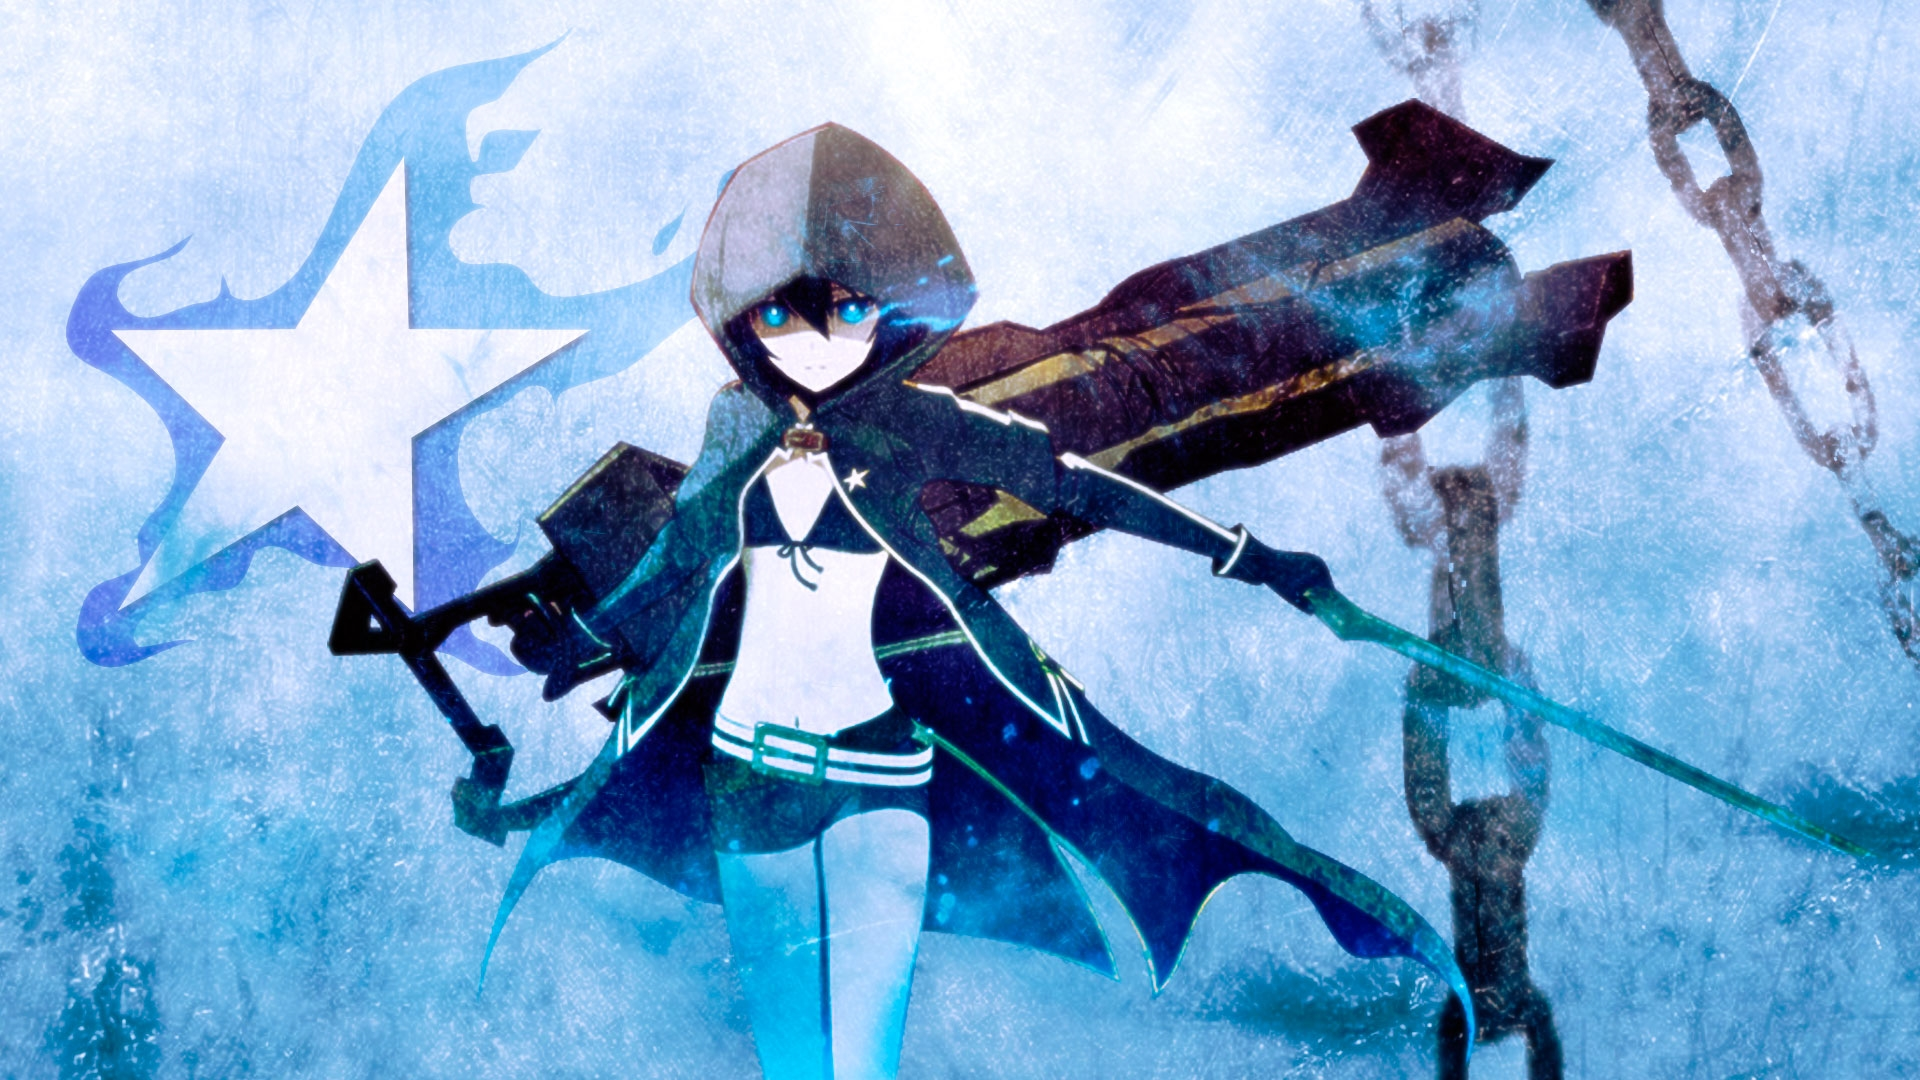 black rock shooter hd photos